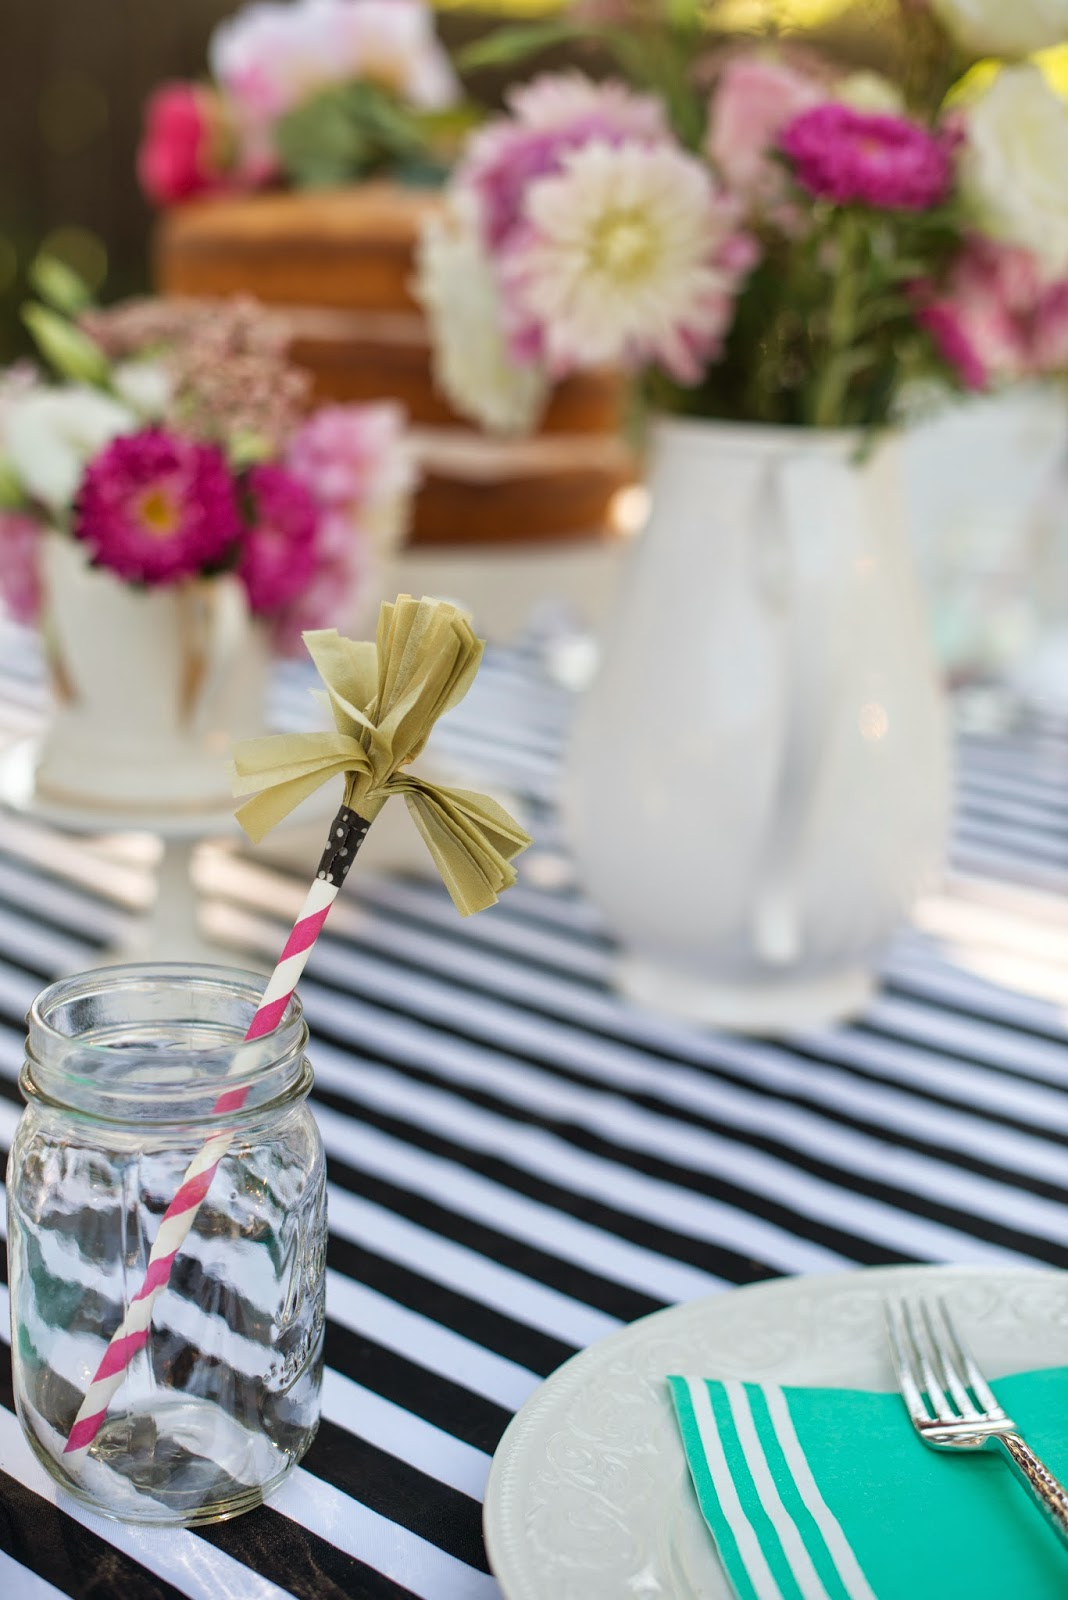 Tissue paper tassel tutorial - For Each Drinking Cup I Made Up These Tissue Paper Tassels With Paper Straws